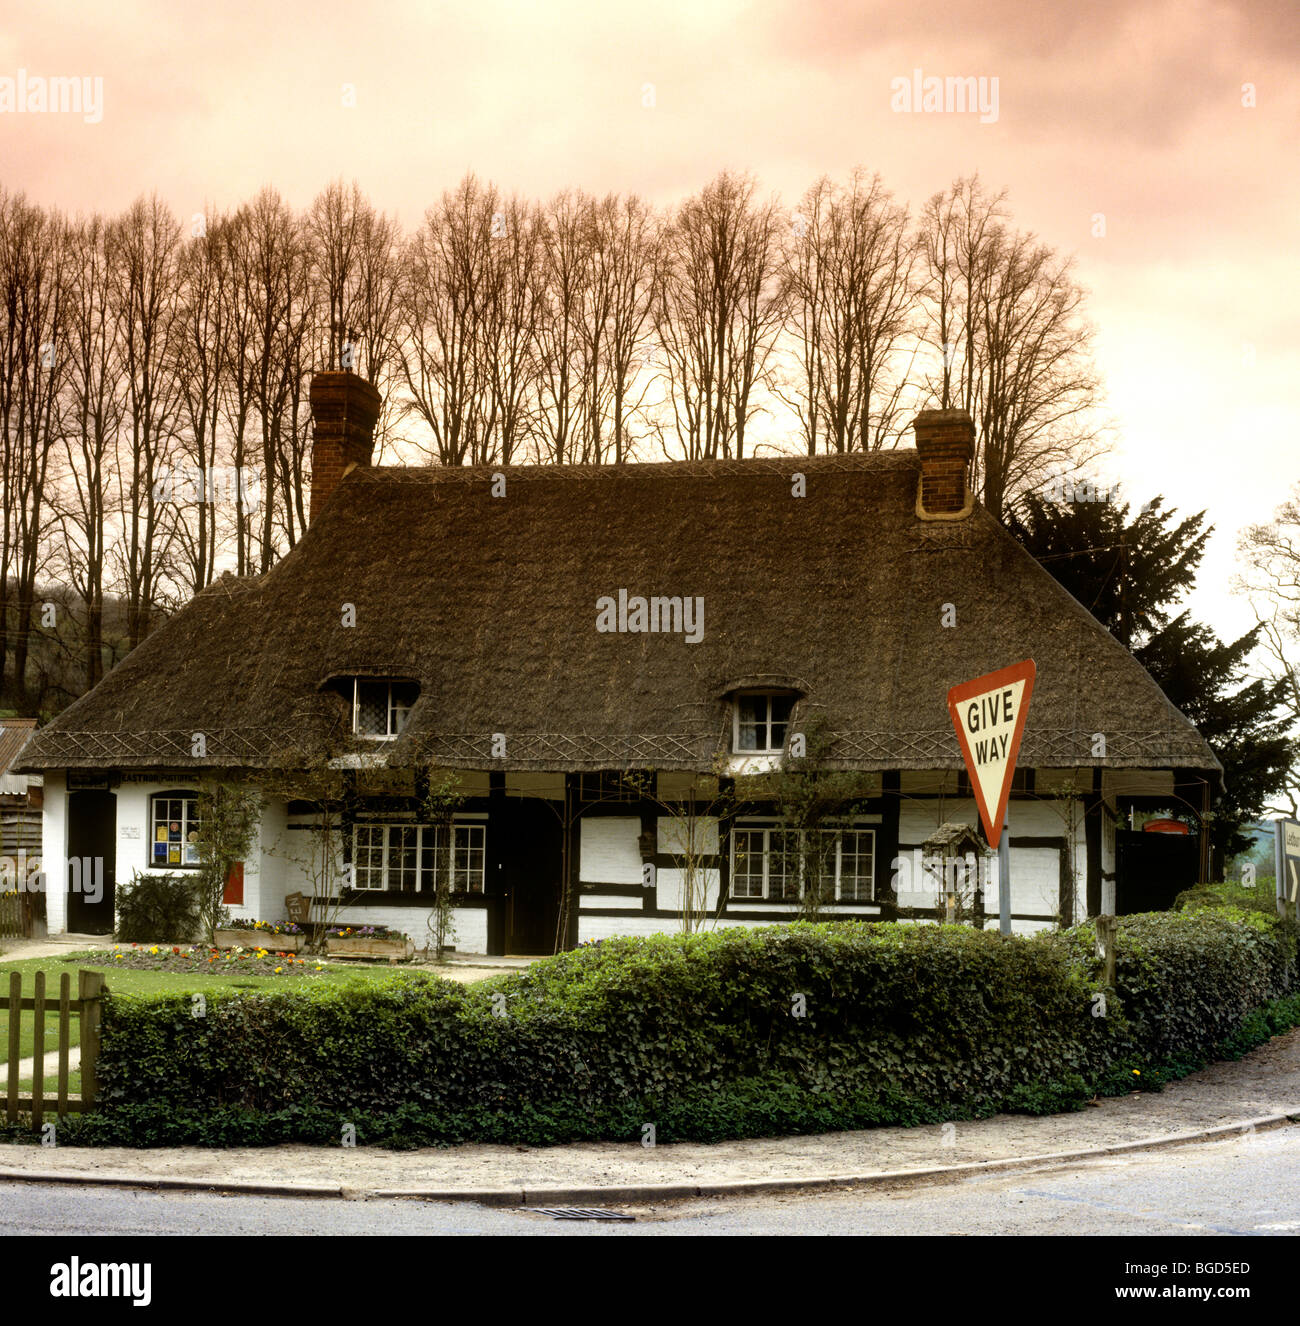 UK England Herefordshire Eastnor Rural Services Post Office In Thatched Cottage